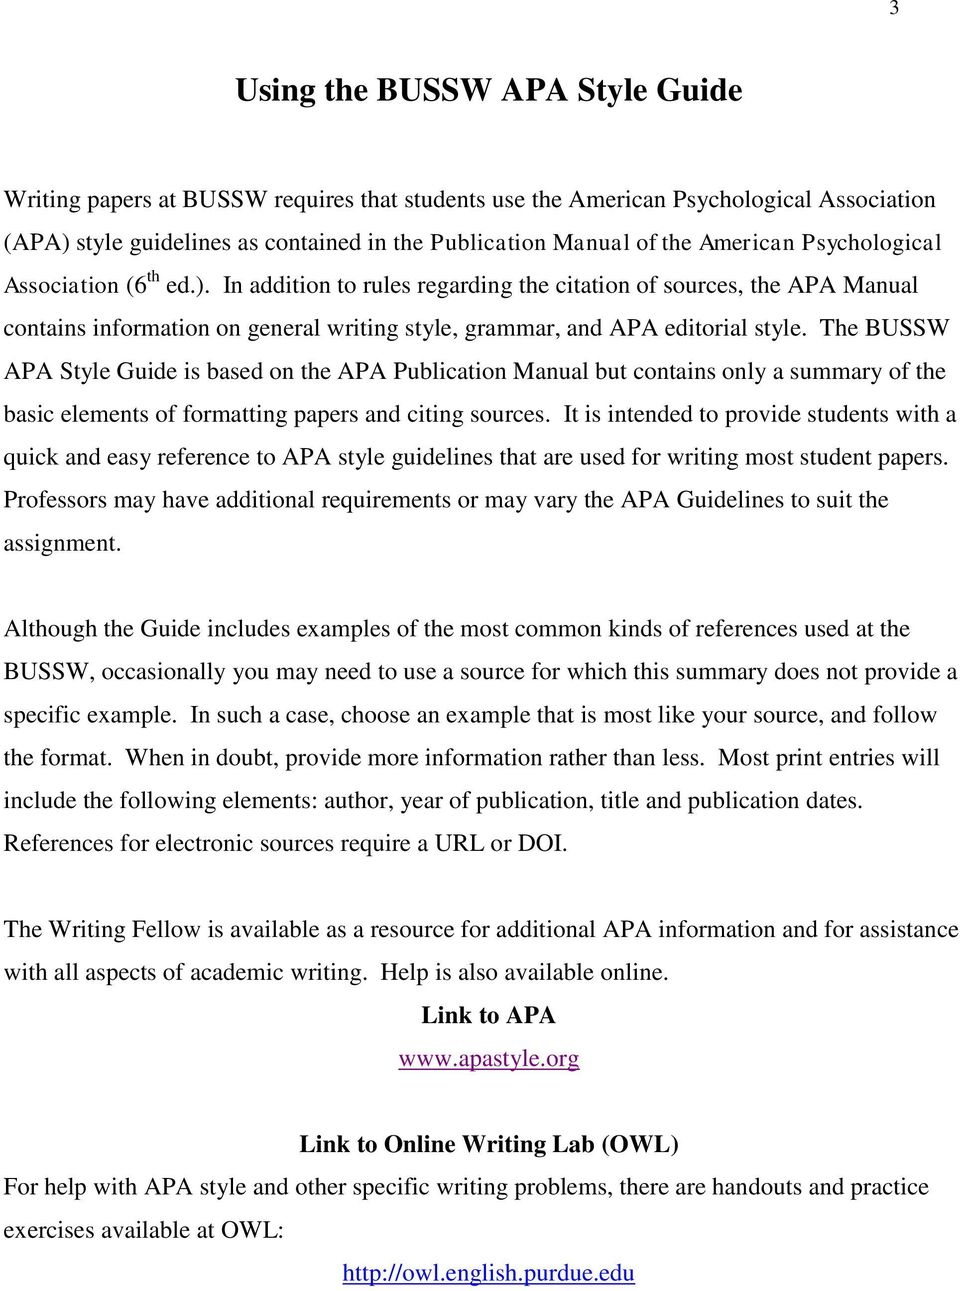 The BUSSW APA Style Guide is based on the APA Publication Manual but contains only a summary of the basic elements of formatting papers and citing sources.